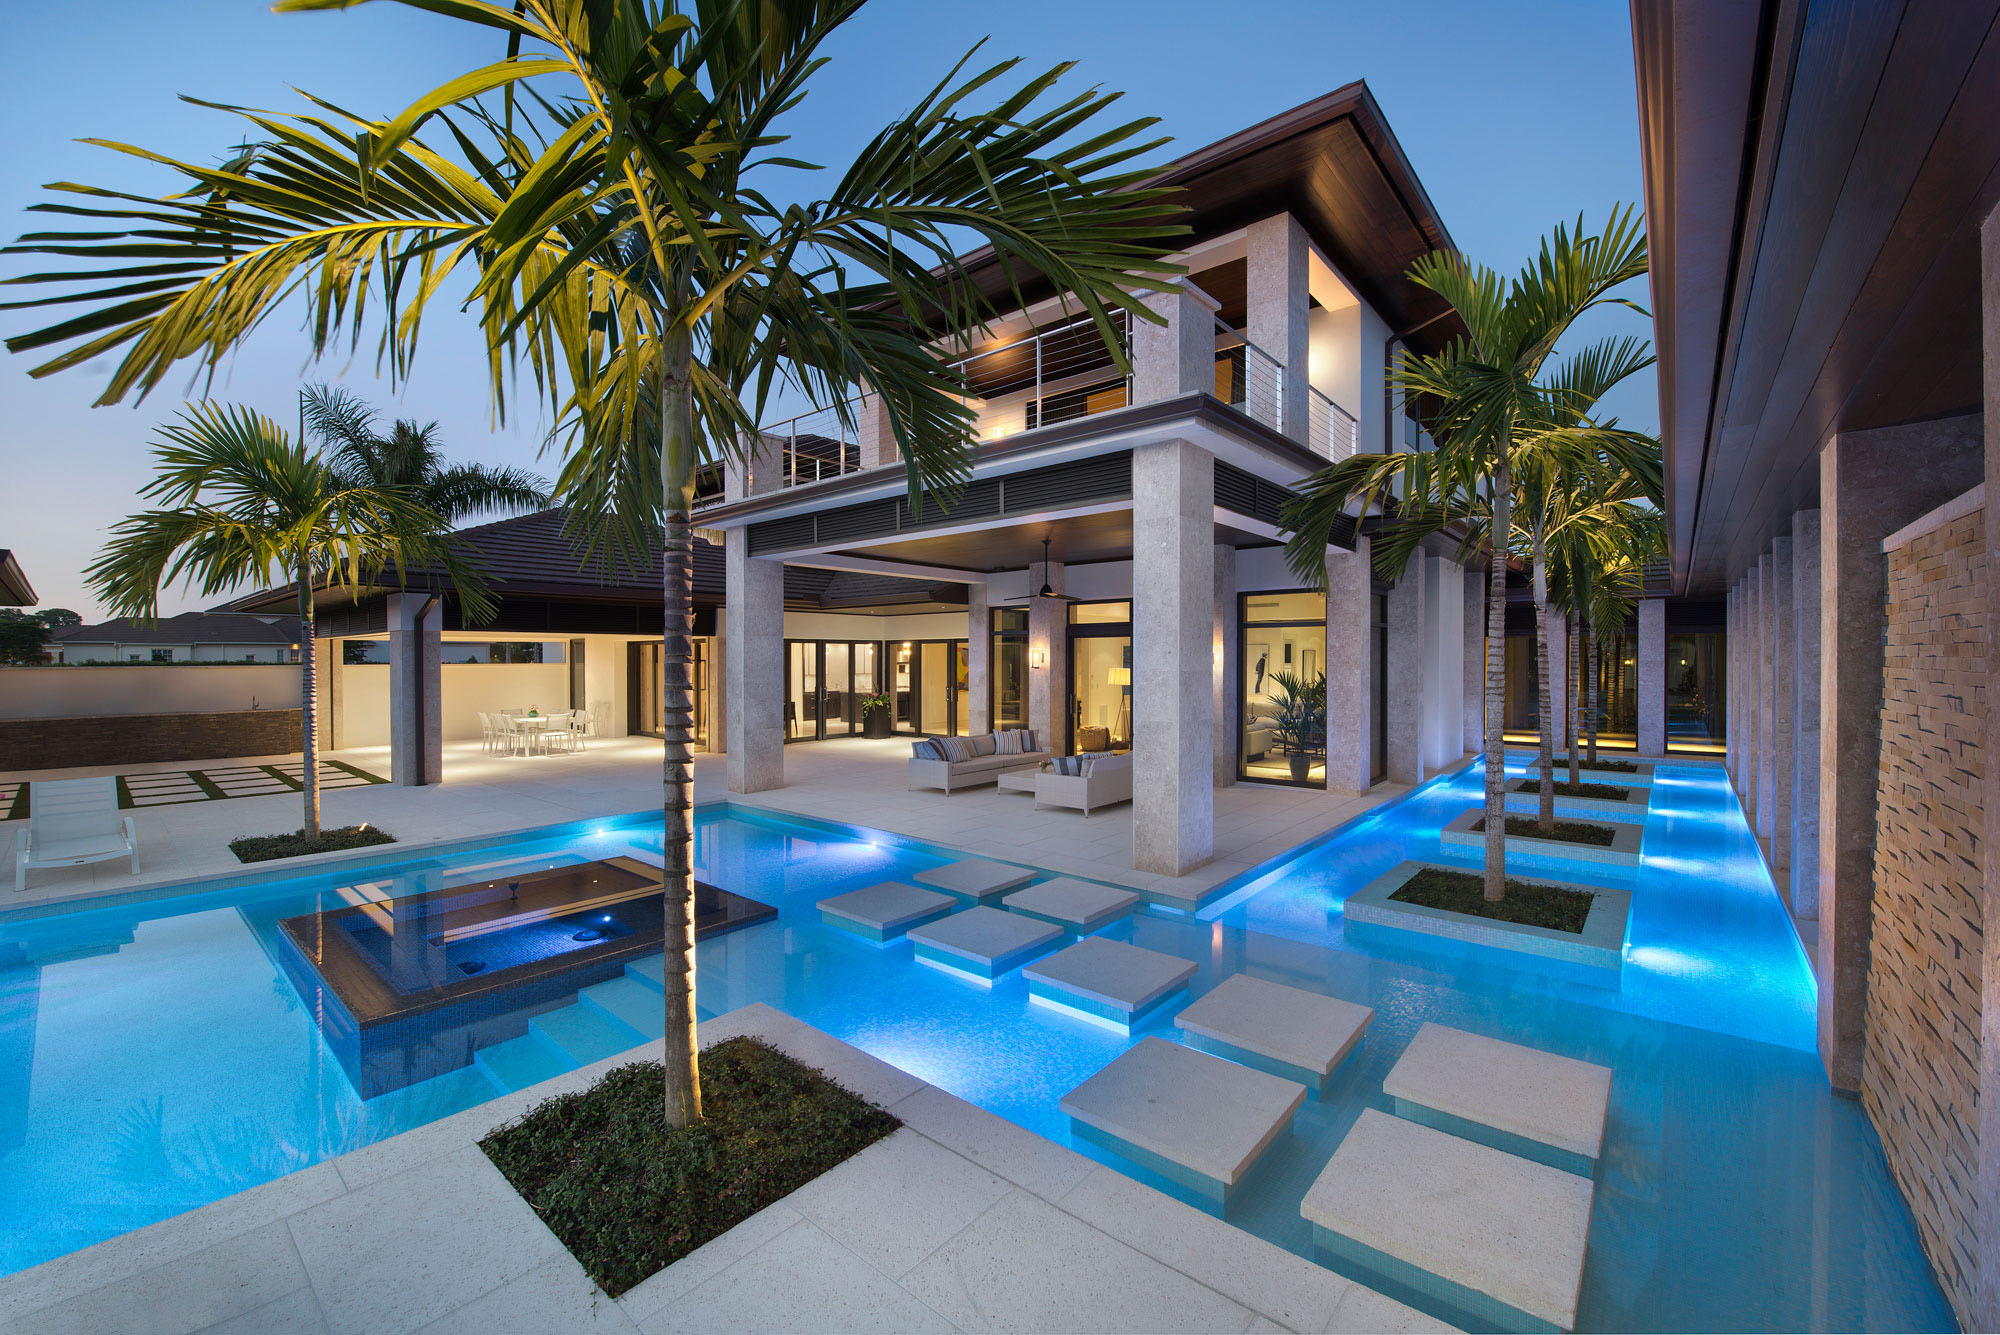 Custom dream home in florida with elegant swimming pool for Modern florida homes